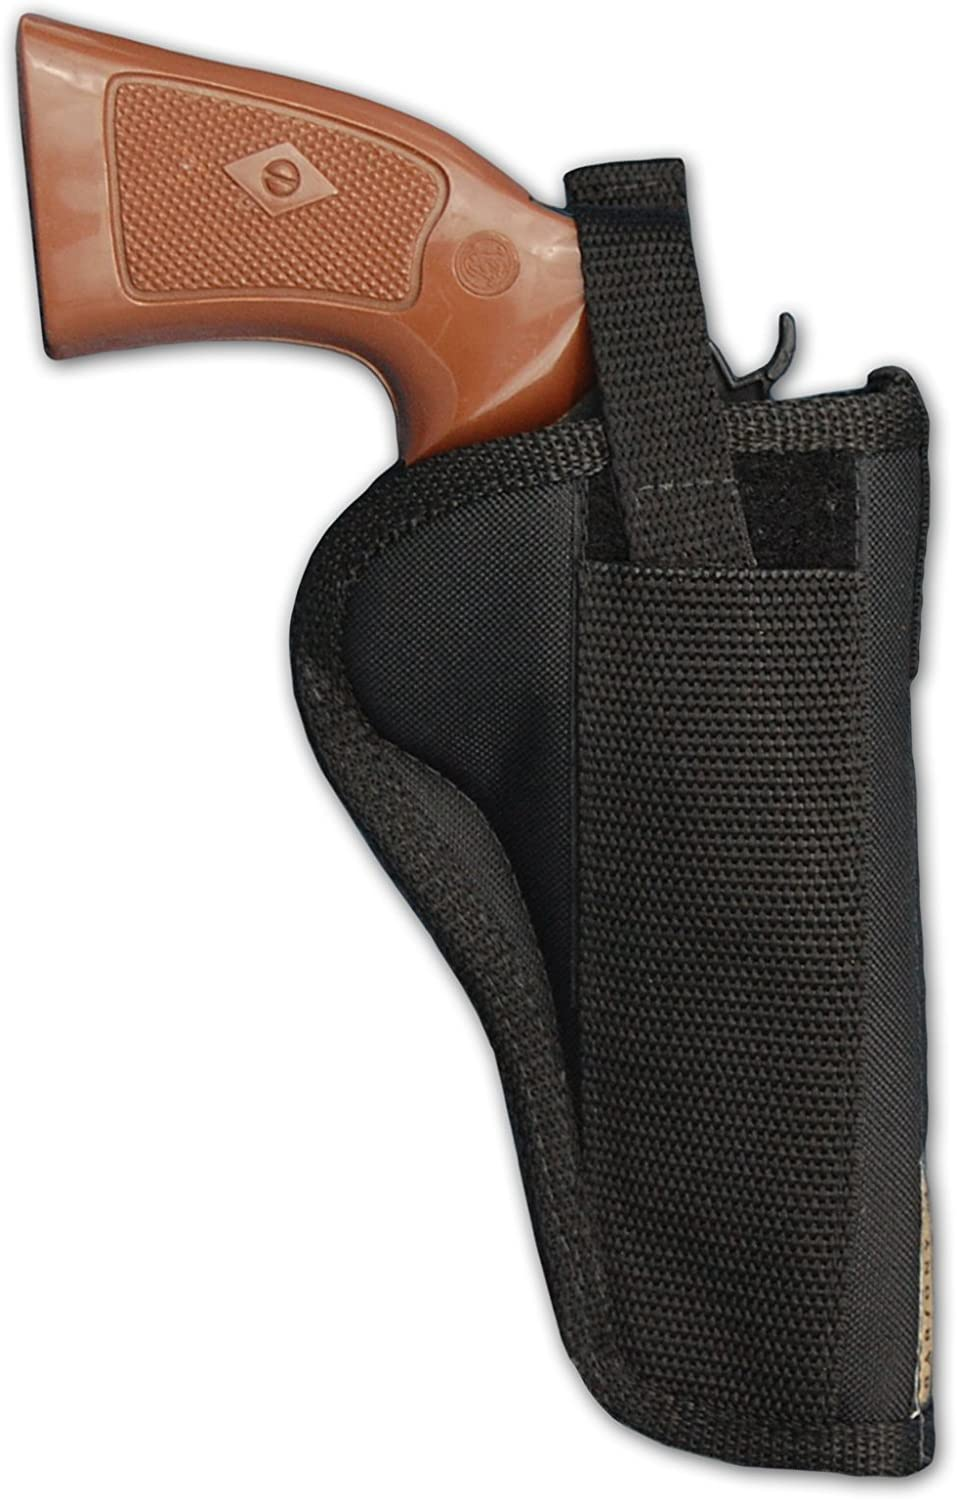 Barsony New Gun Concealment Belt Holster for 44 Super beauty SEAL limited product product restock quality top 41 4